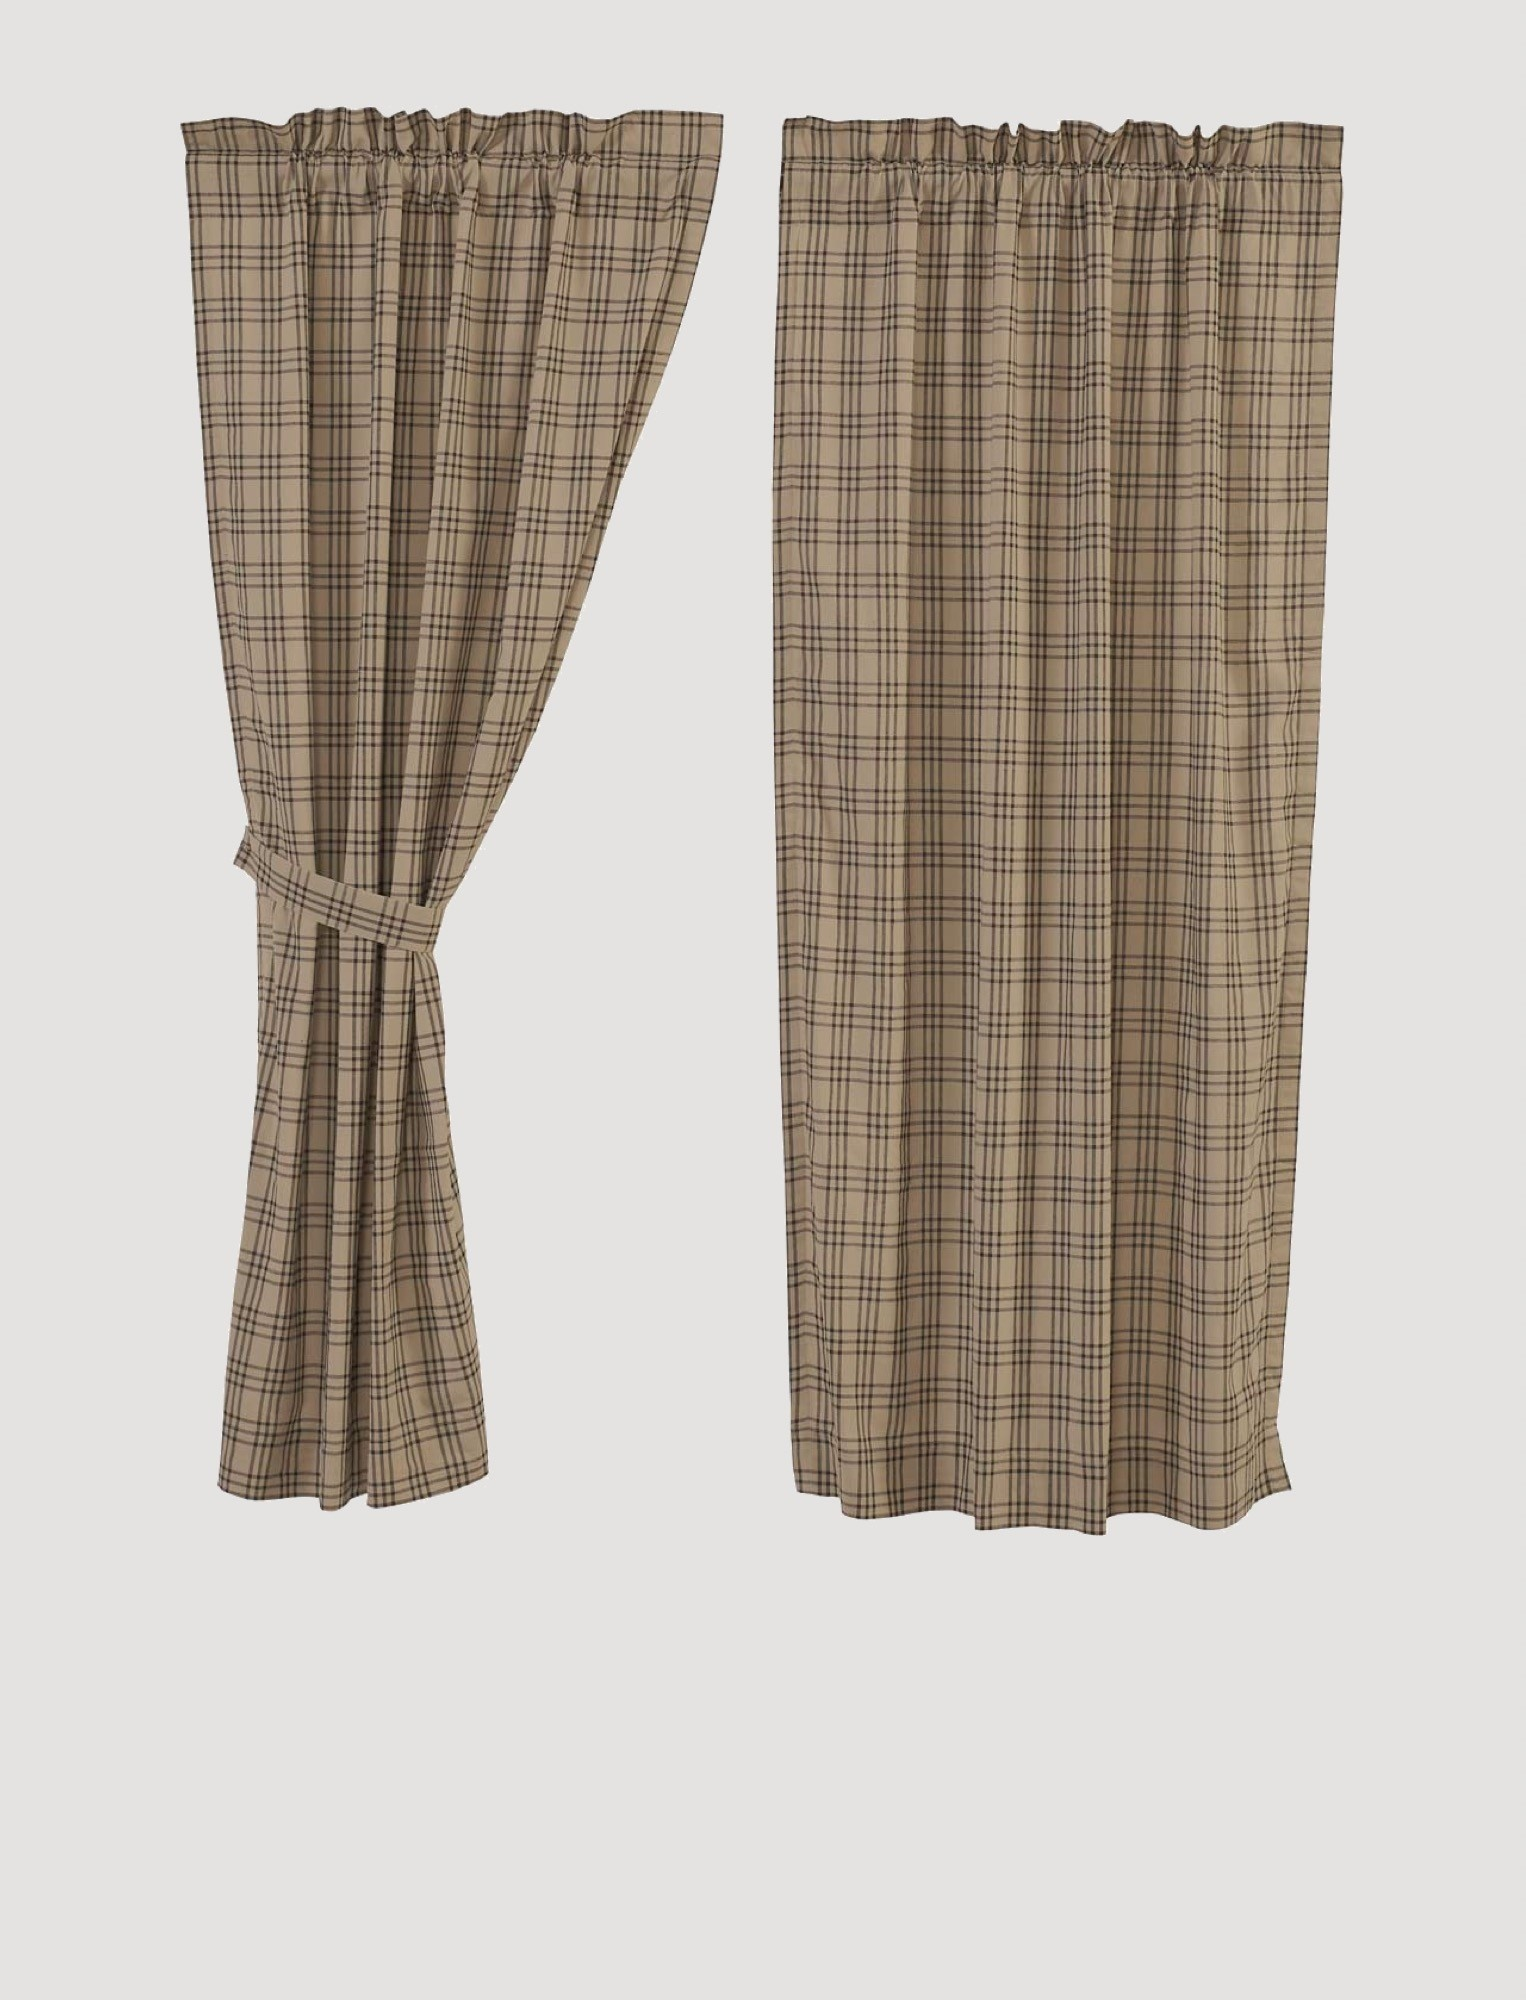 VHC Brands Sawyer Mill Charcoal Plaid Short Lined Panel Set of 2